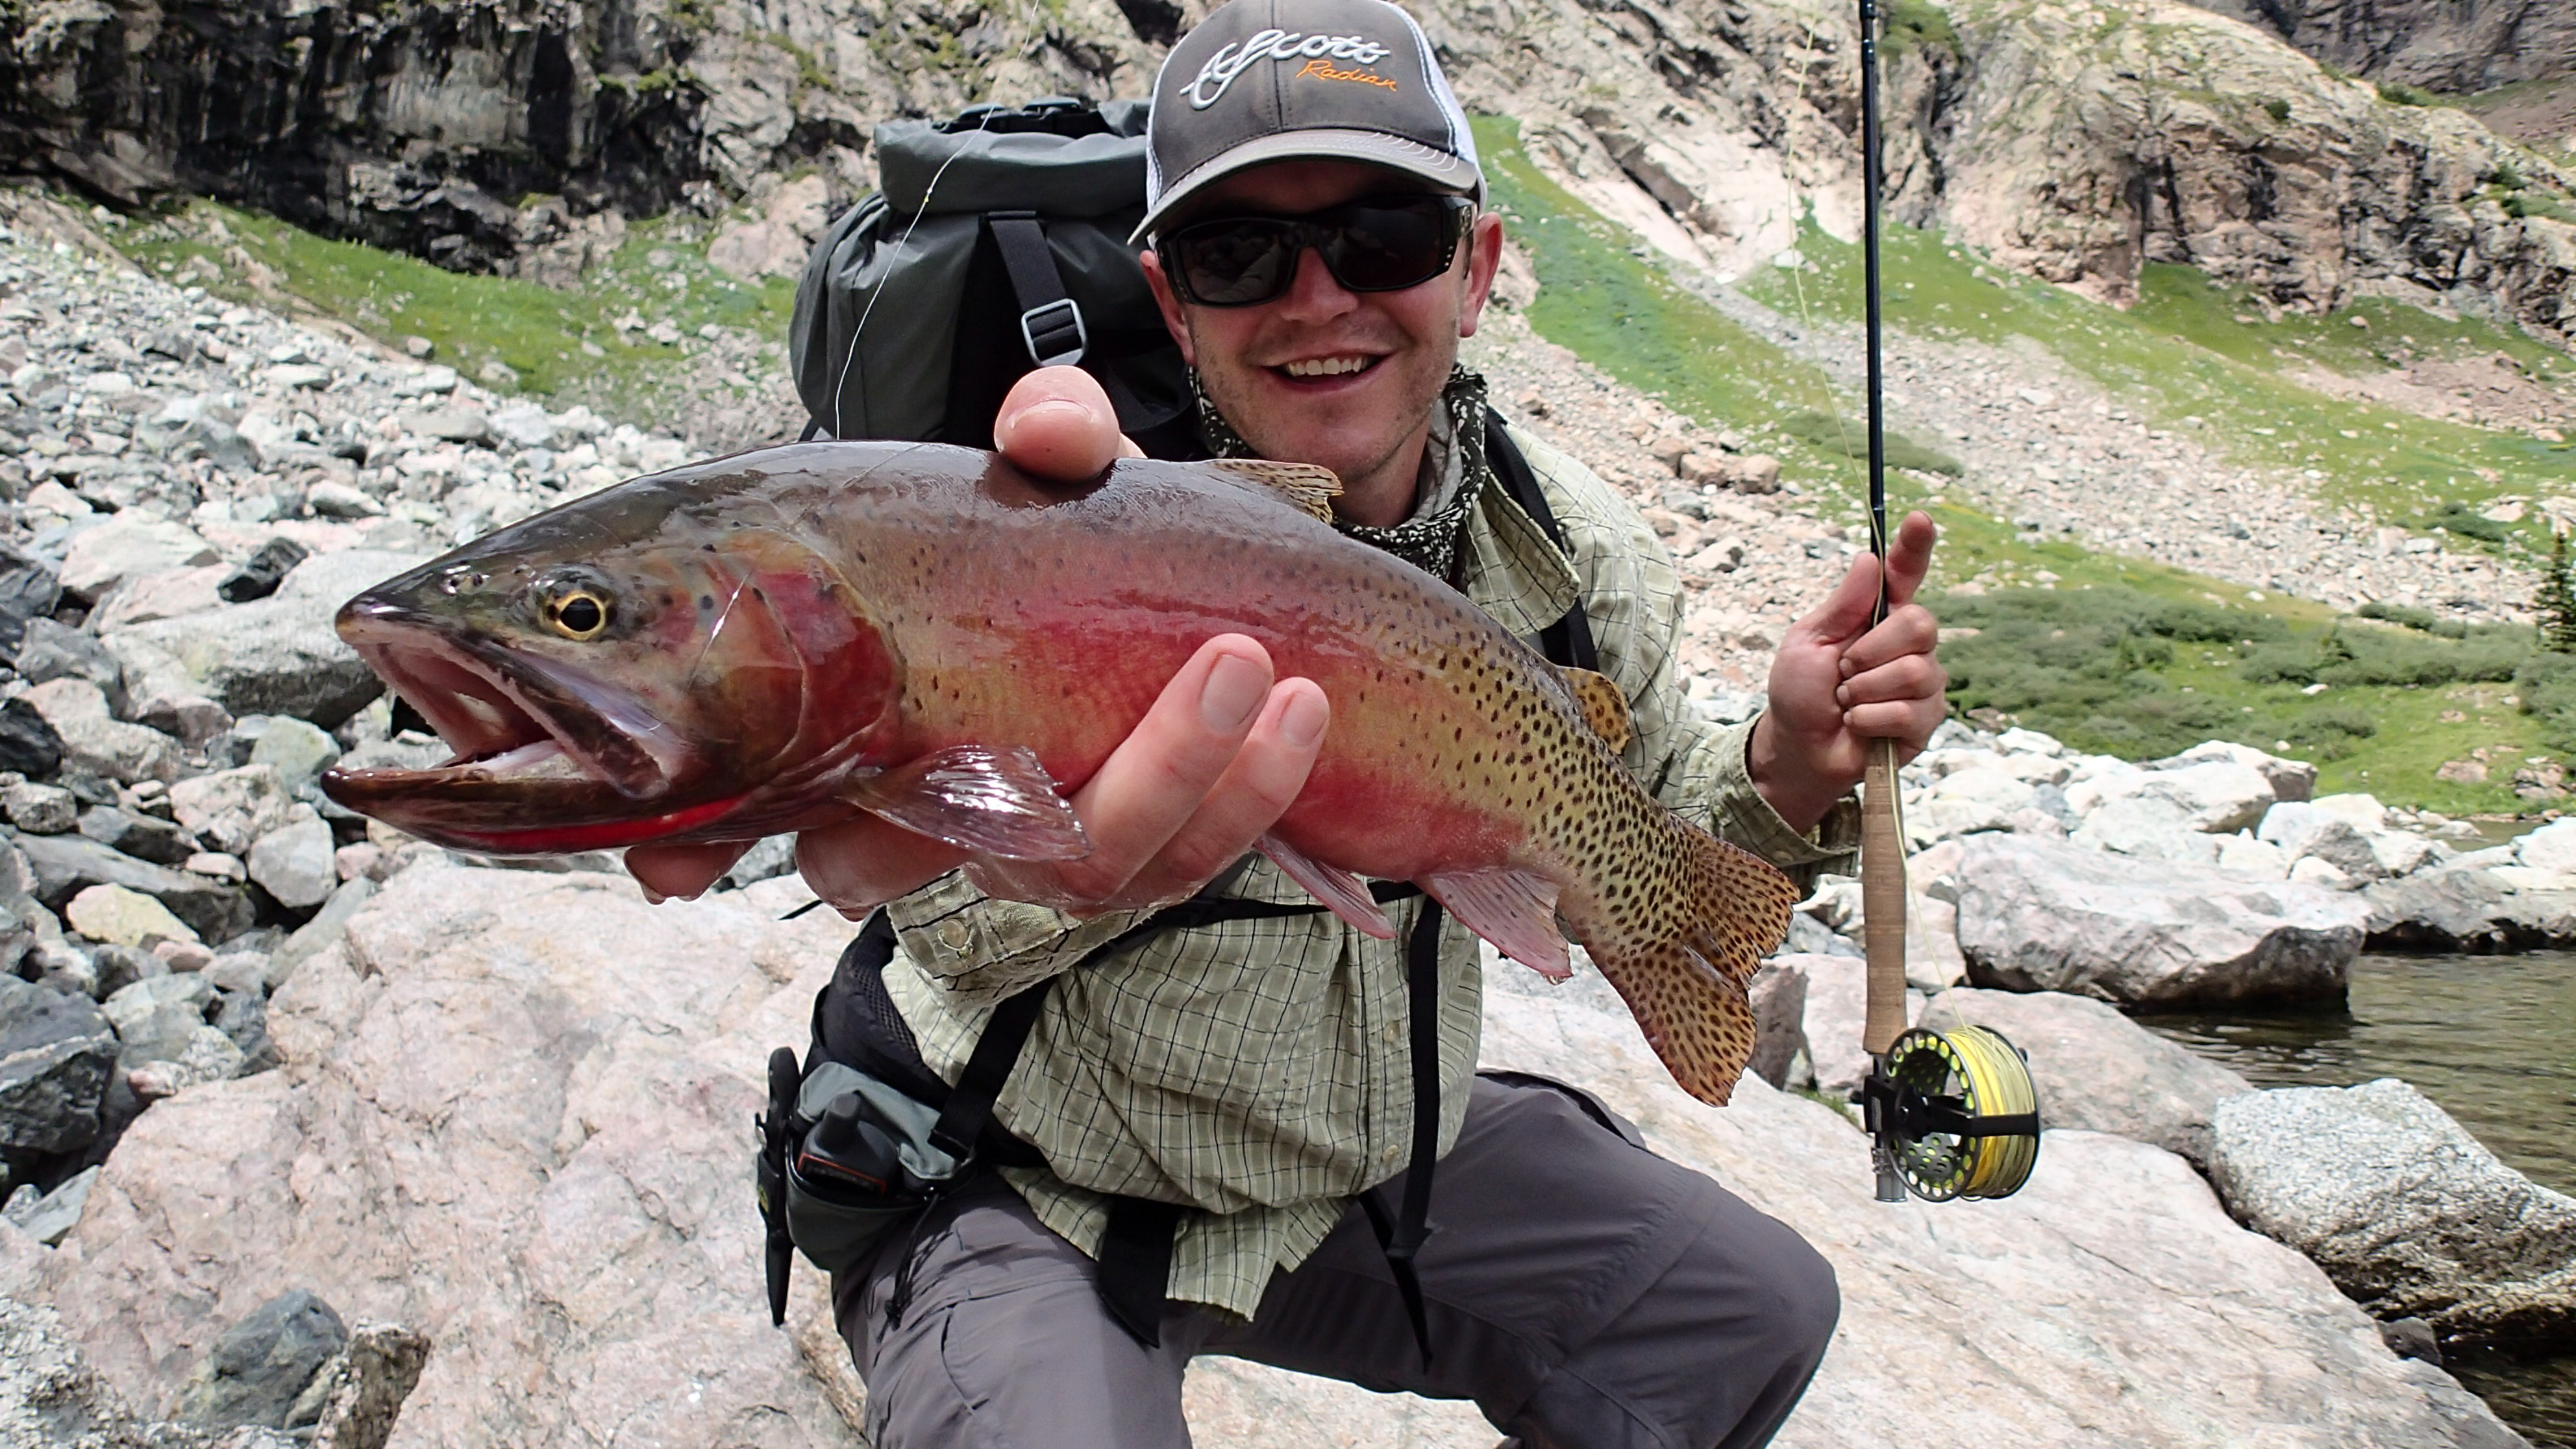 Photo: Sand Dunes 5 | Kevin Terry Holds Trout